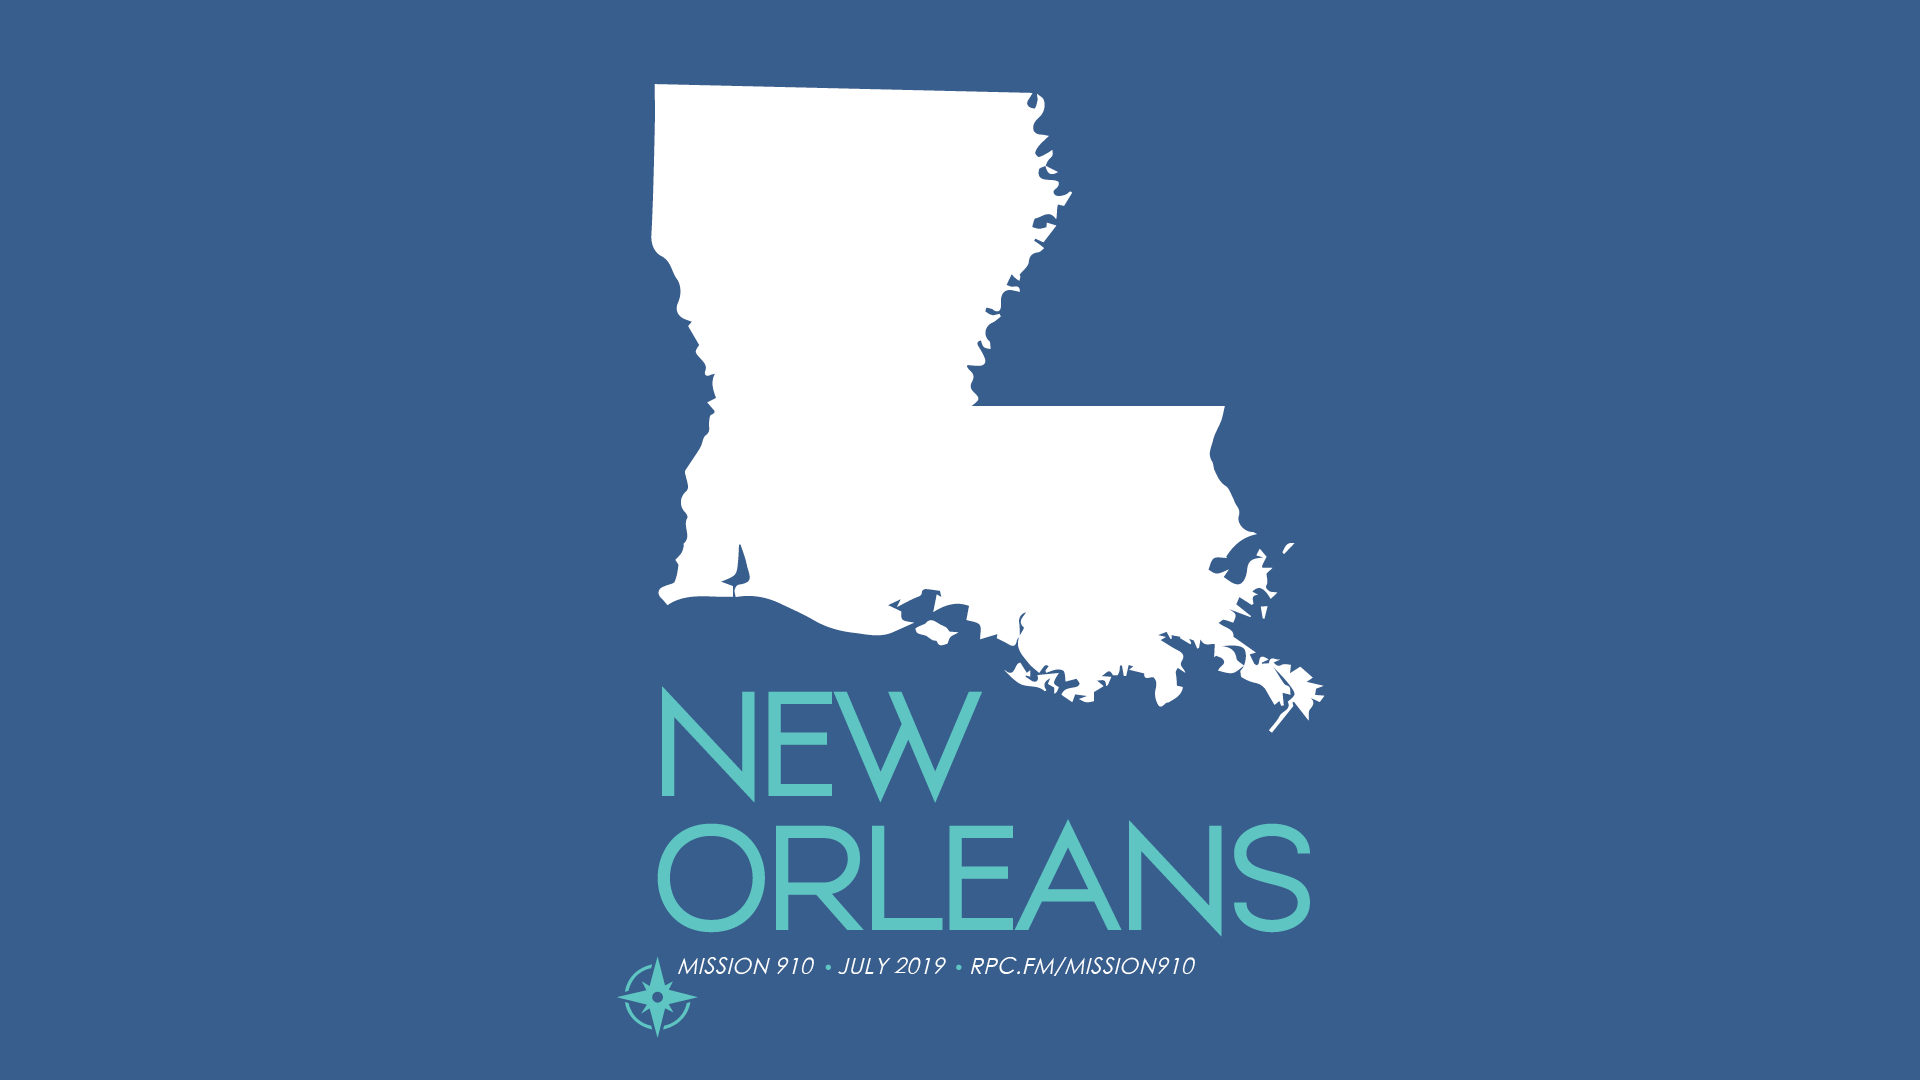 New Orleans Student Mission Trip